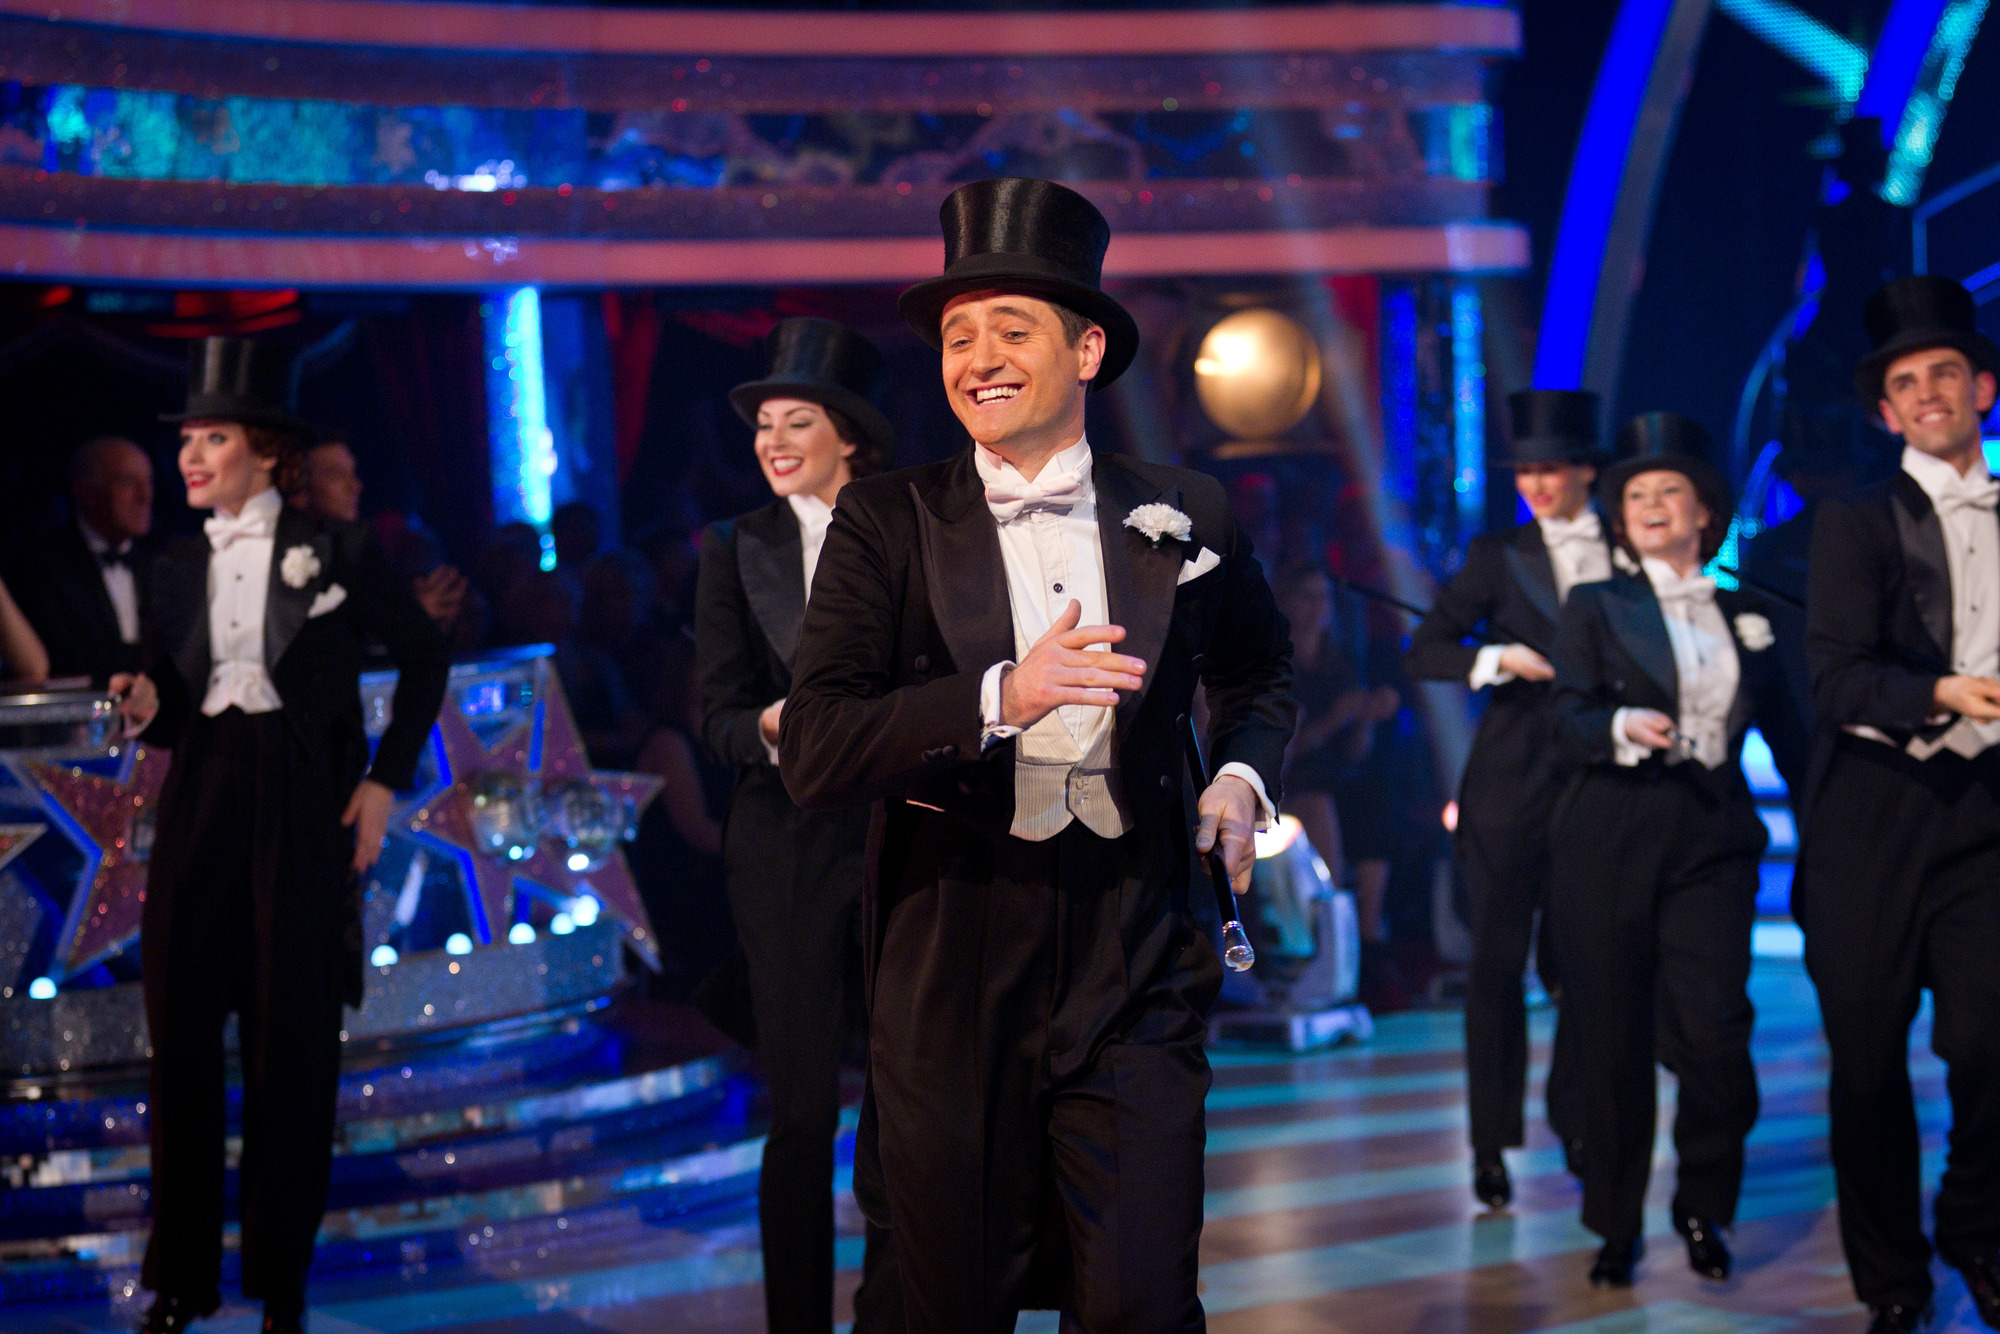 Cast of Top Hat Tom Chambers - (C) BBC - Photographer: Guy Levy